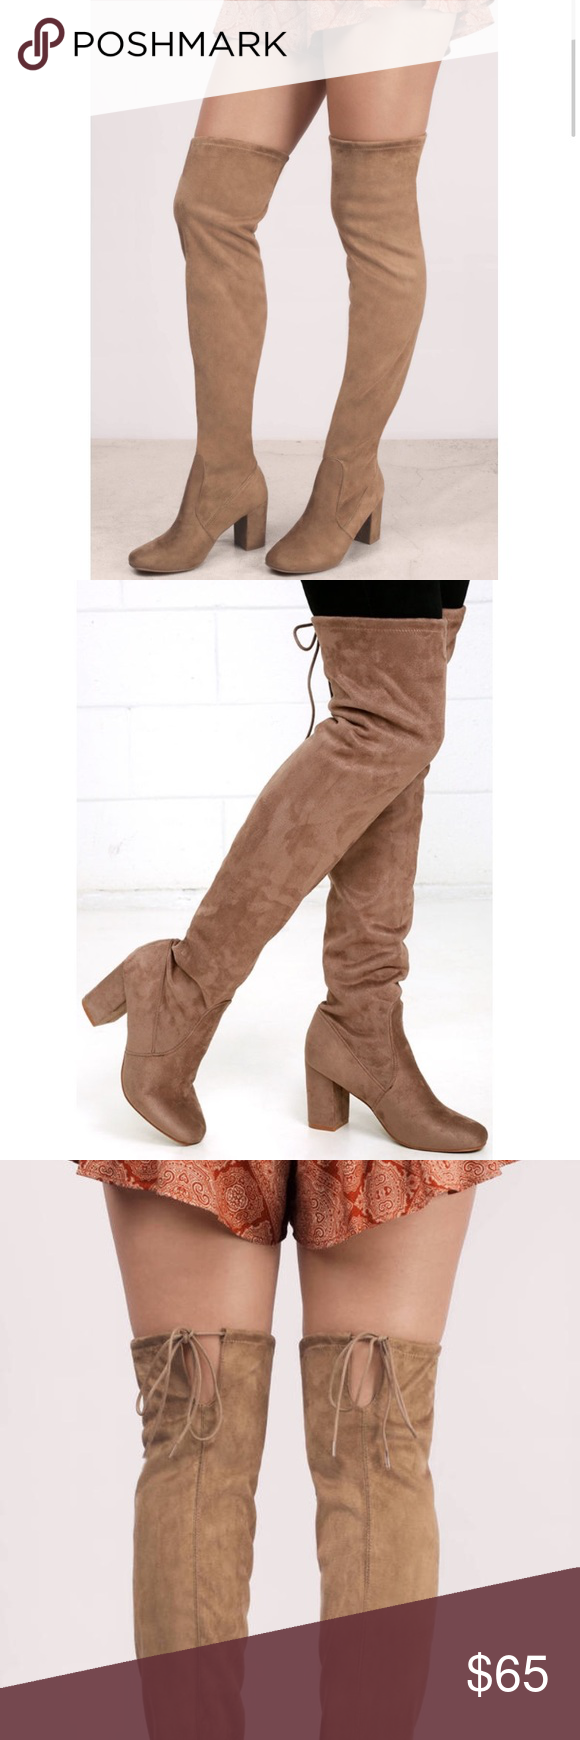 d26f5eb455f Chinese Laundry Kiara Over the Knee Suede Boot Heel  3.5